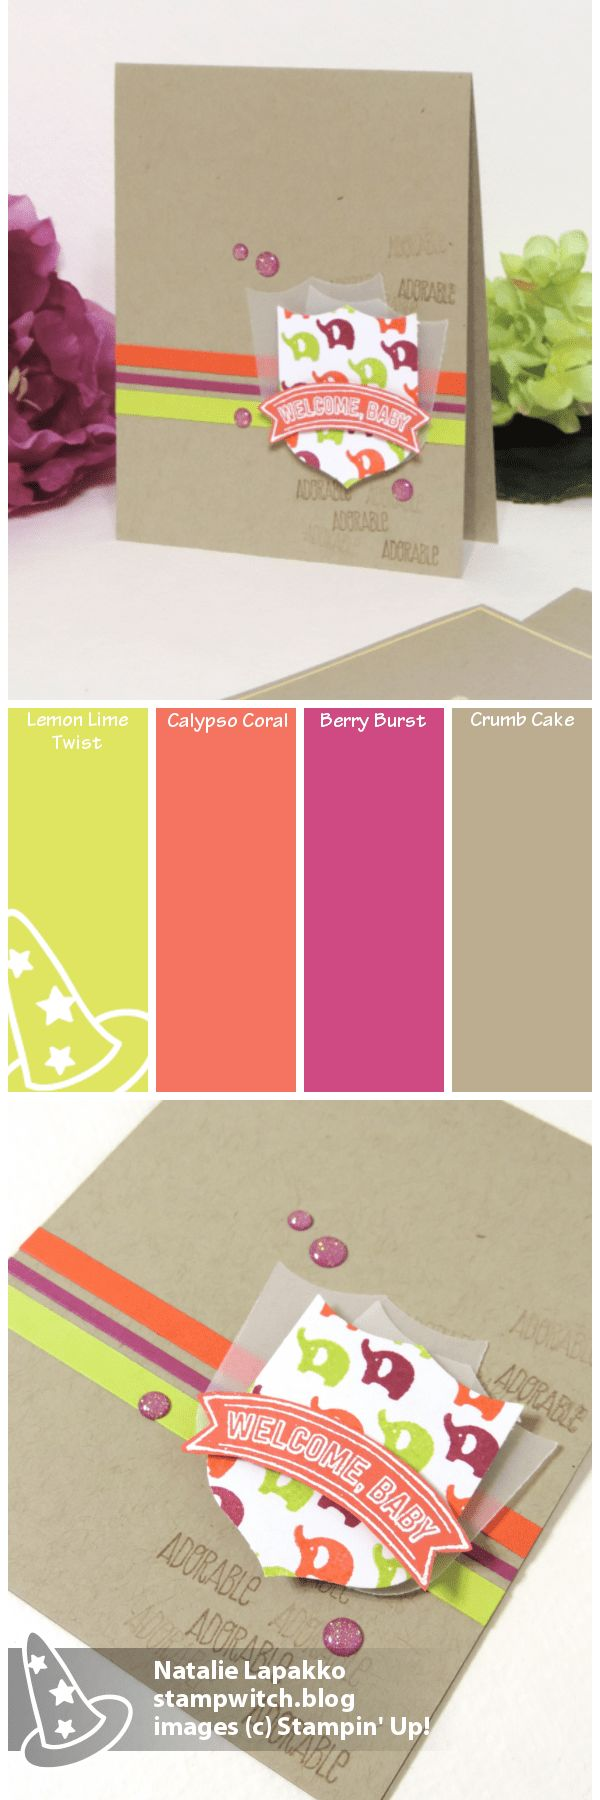 Baby cards by Natalie Lapakko featuring Badges and Banners and Tabs for Everything Stamps from Stampin' Up! Color Inspiration: Lemon Lime Twist, Calypso Coral, Berry Burst, Crumb Cake